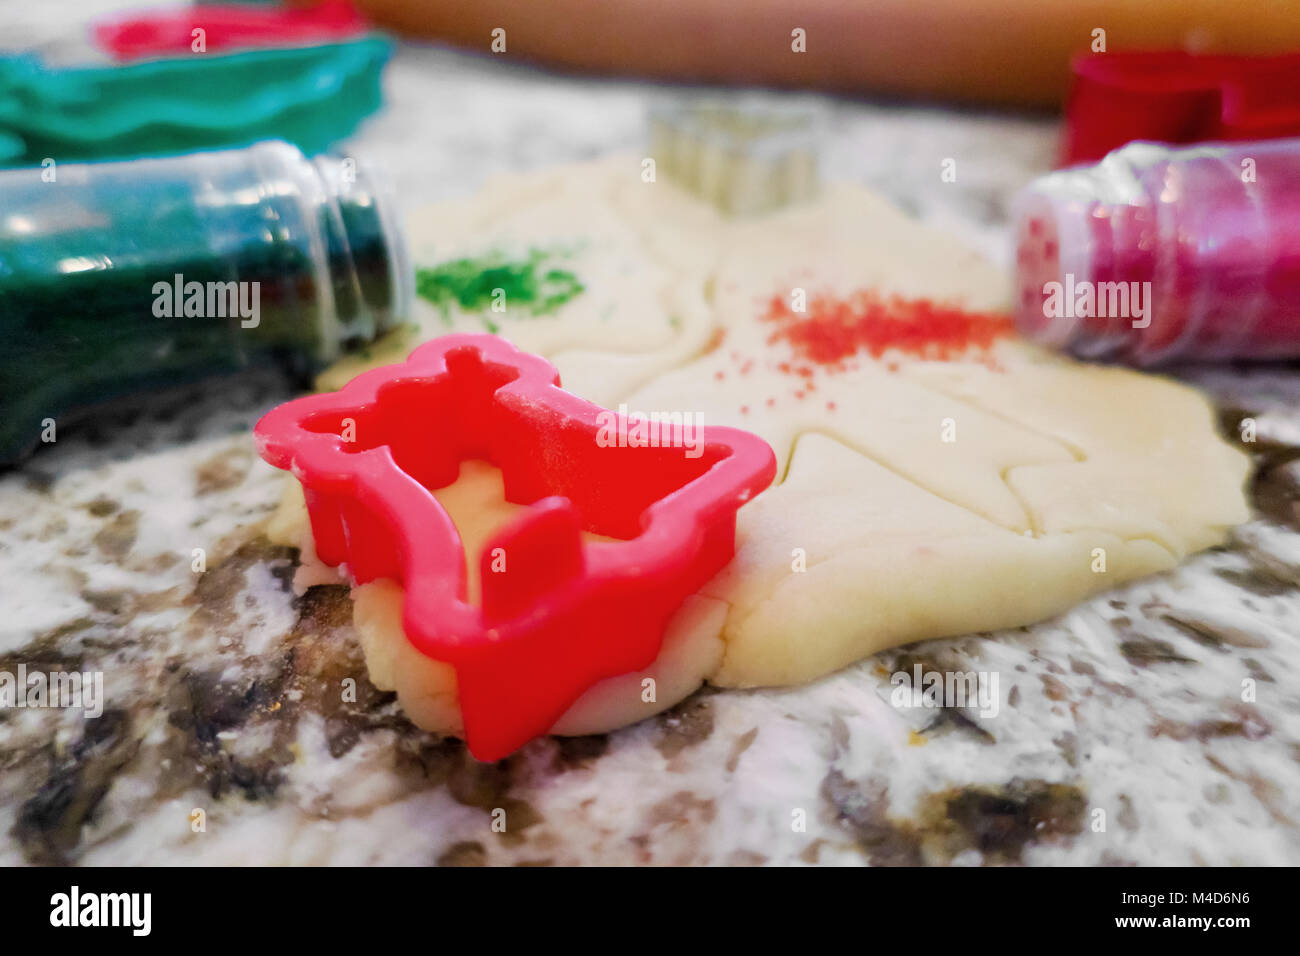 Red and green Sprinkles spilling out onto sugar cookie dough. - Stock Image